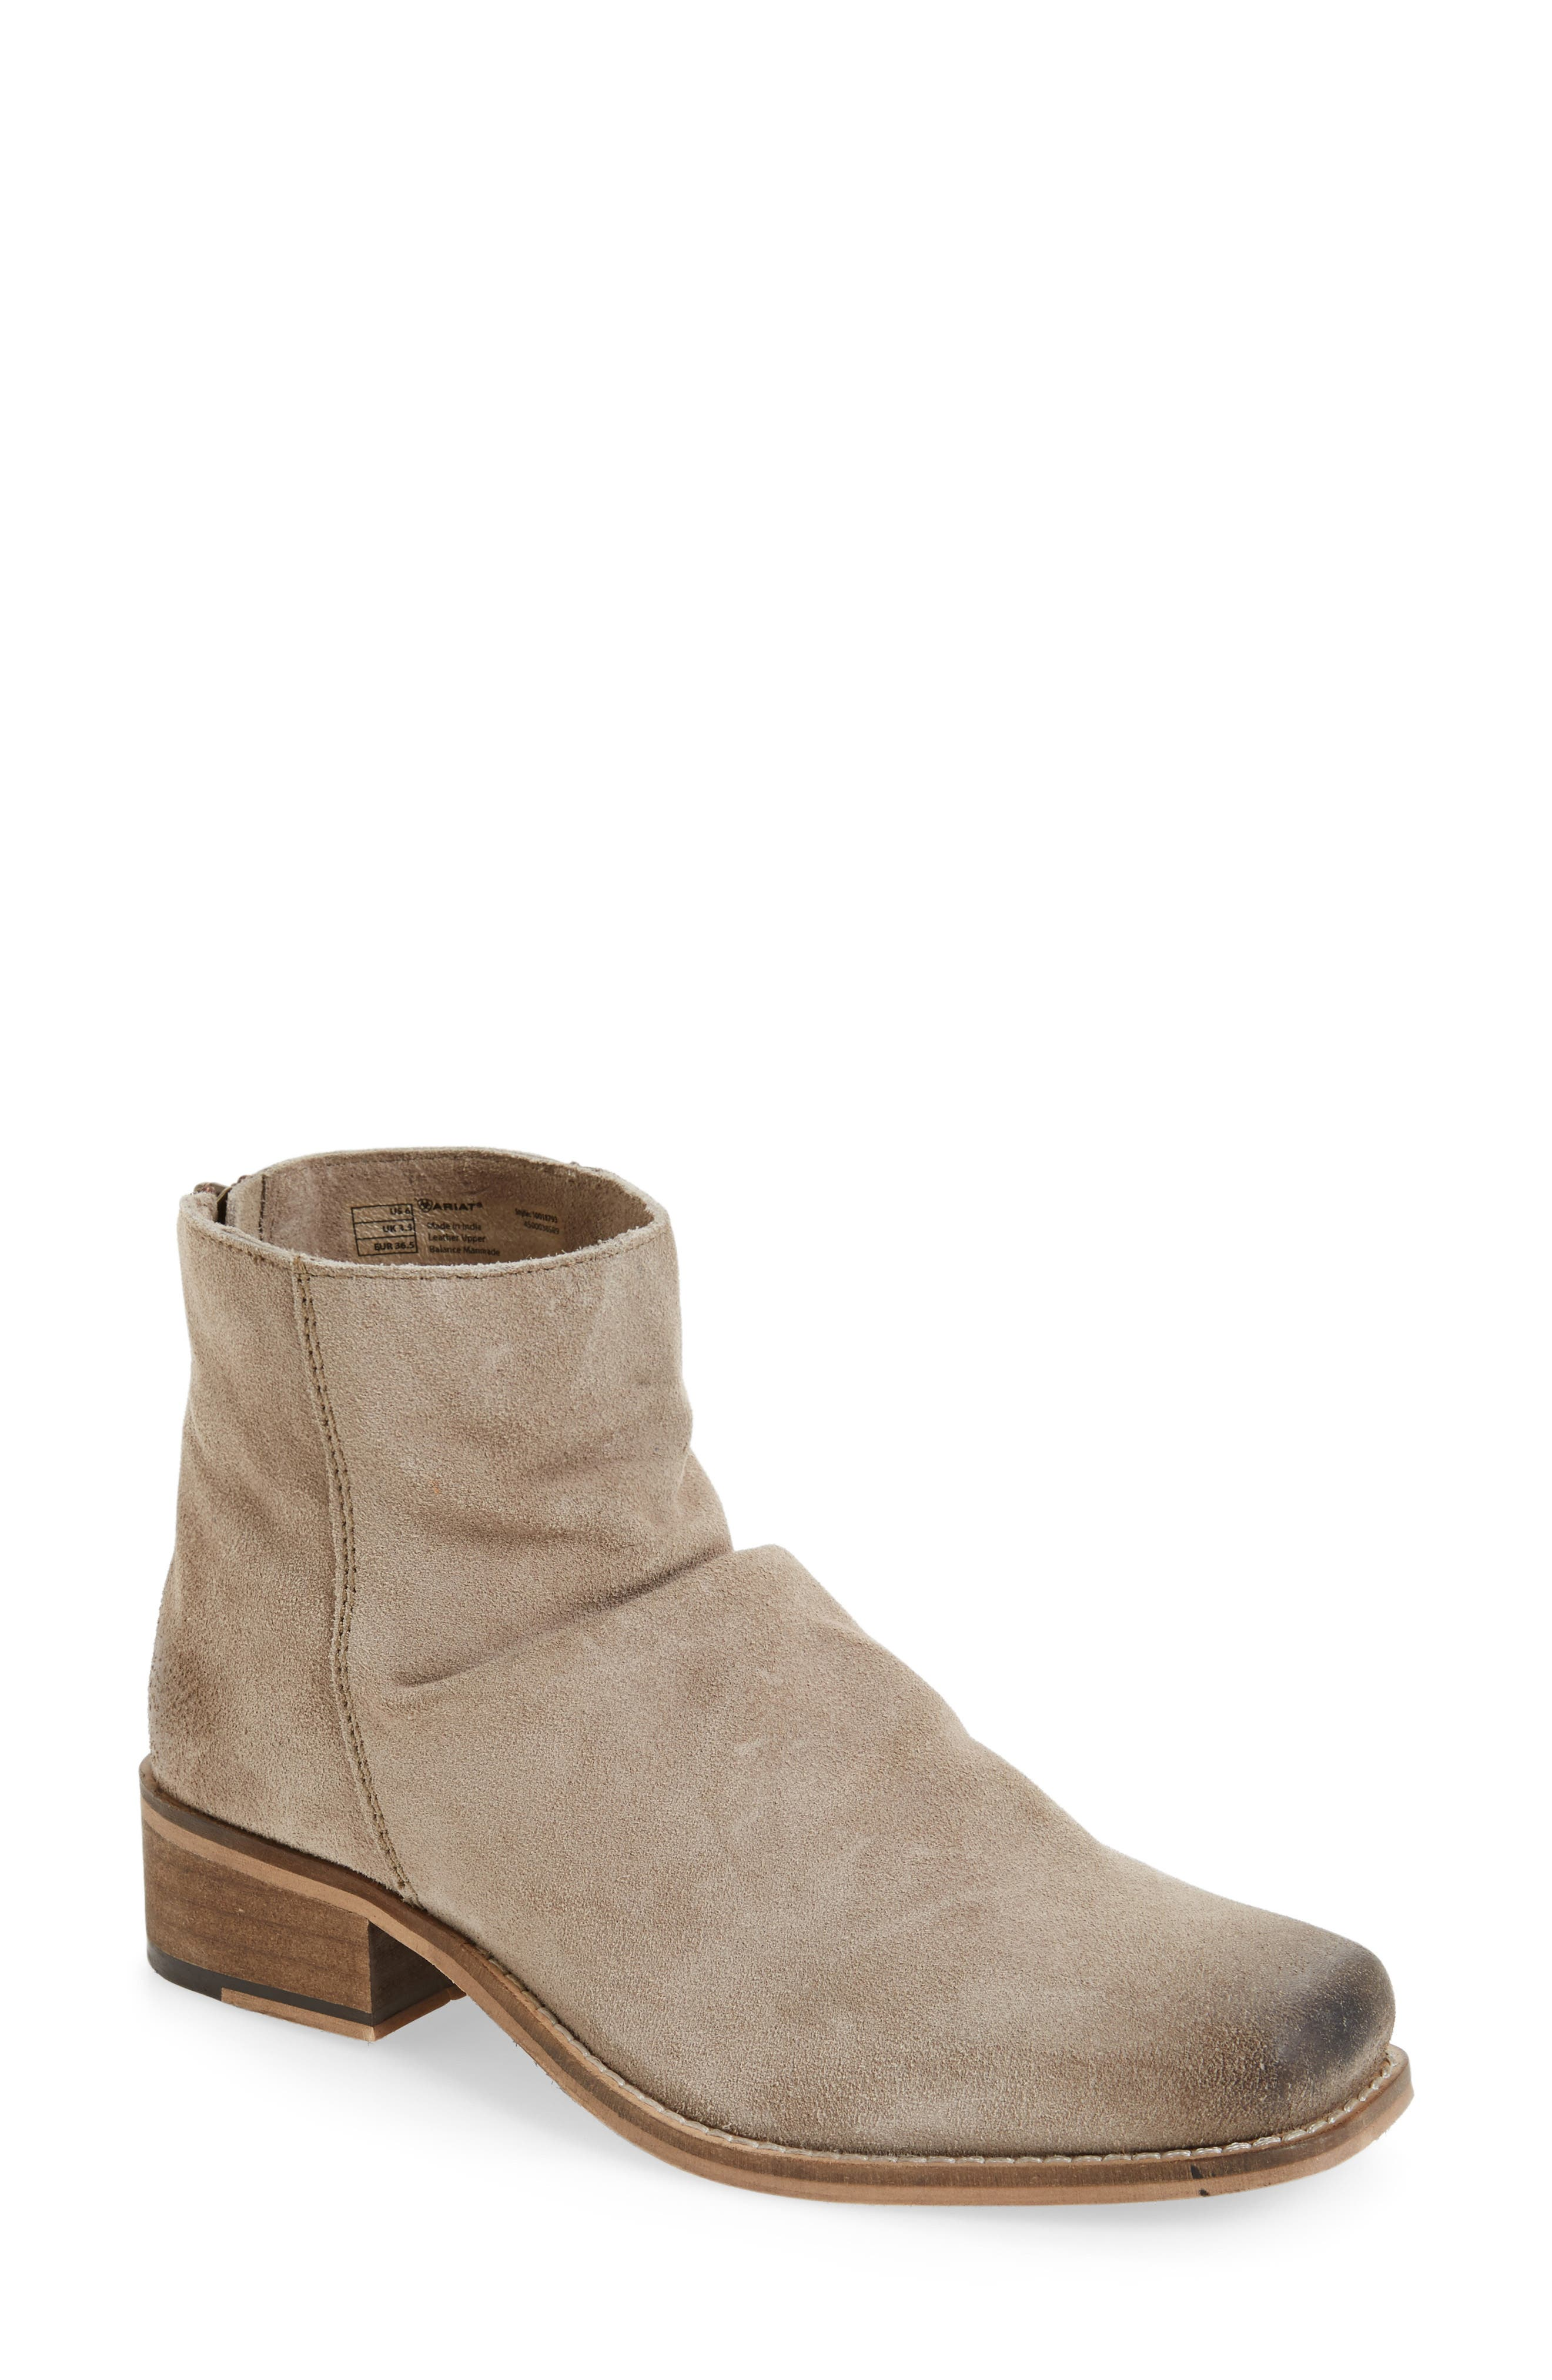 Unbridled Sloan Slouchy Bootie,                             Main thumbnail 1, color,                             200